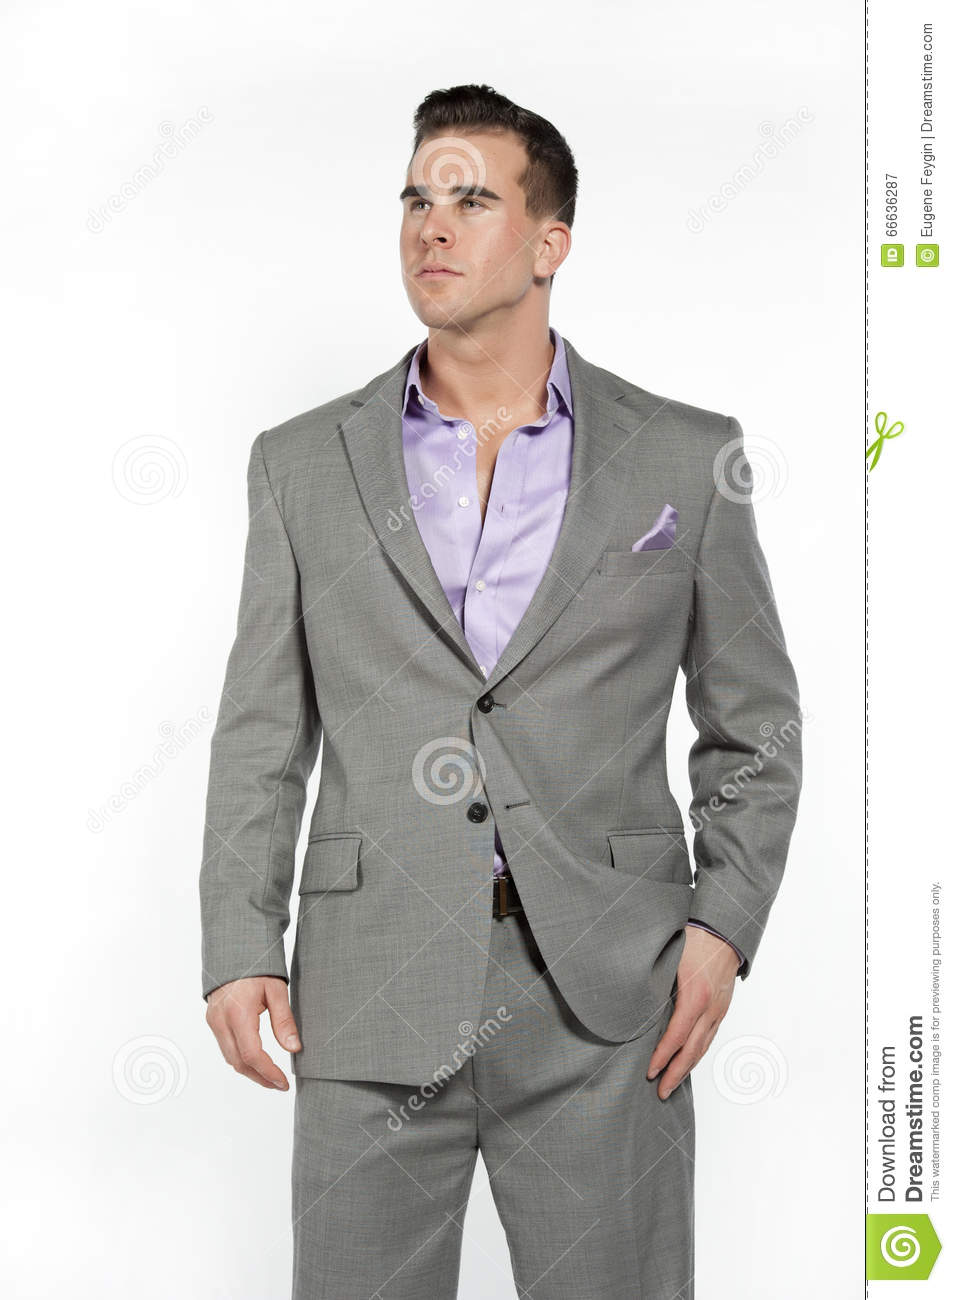 Caucasian Athletic Male In Fitted Gray Suit Stock Photo - Image